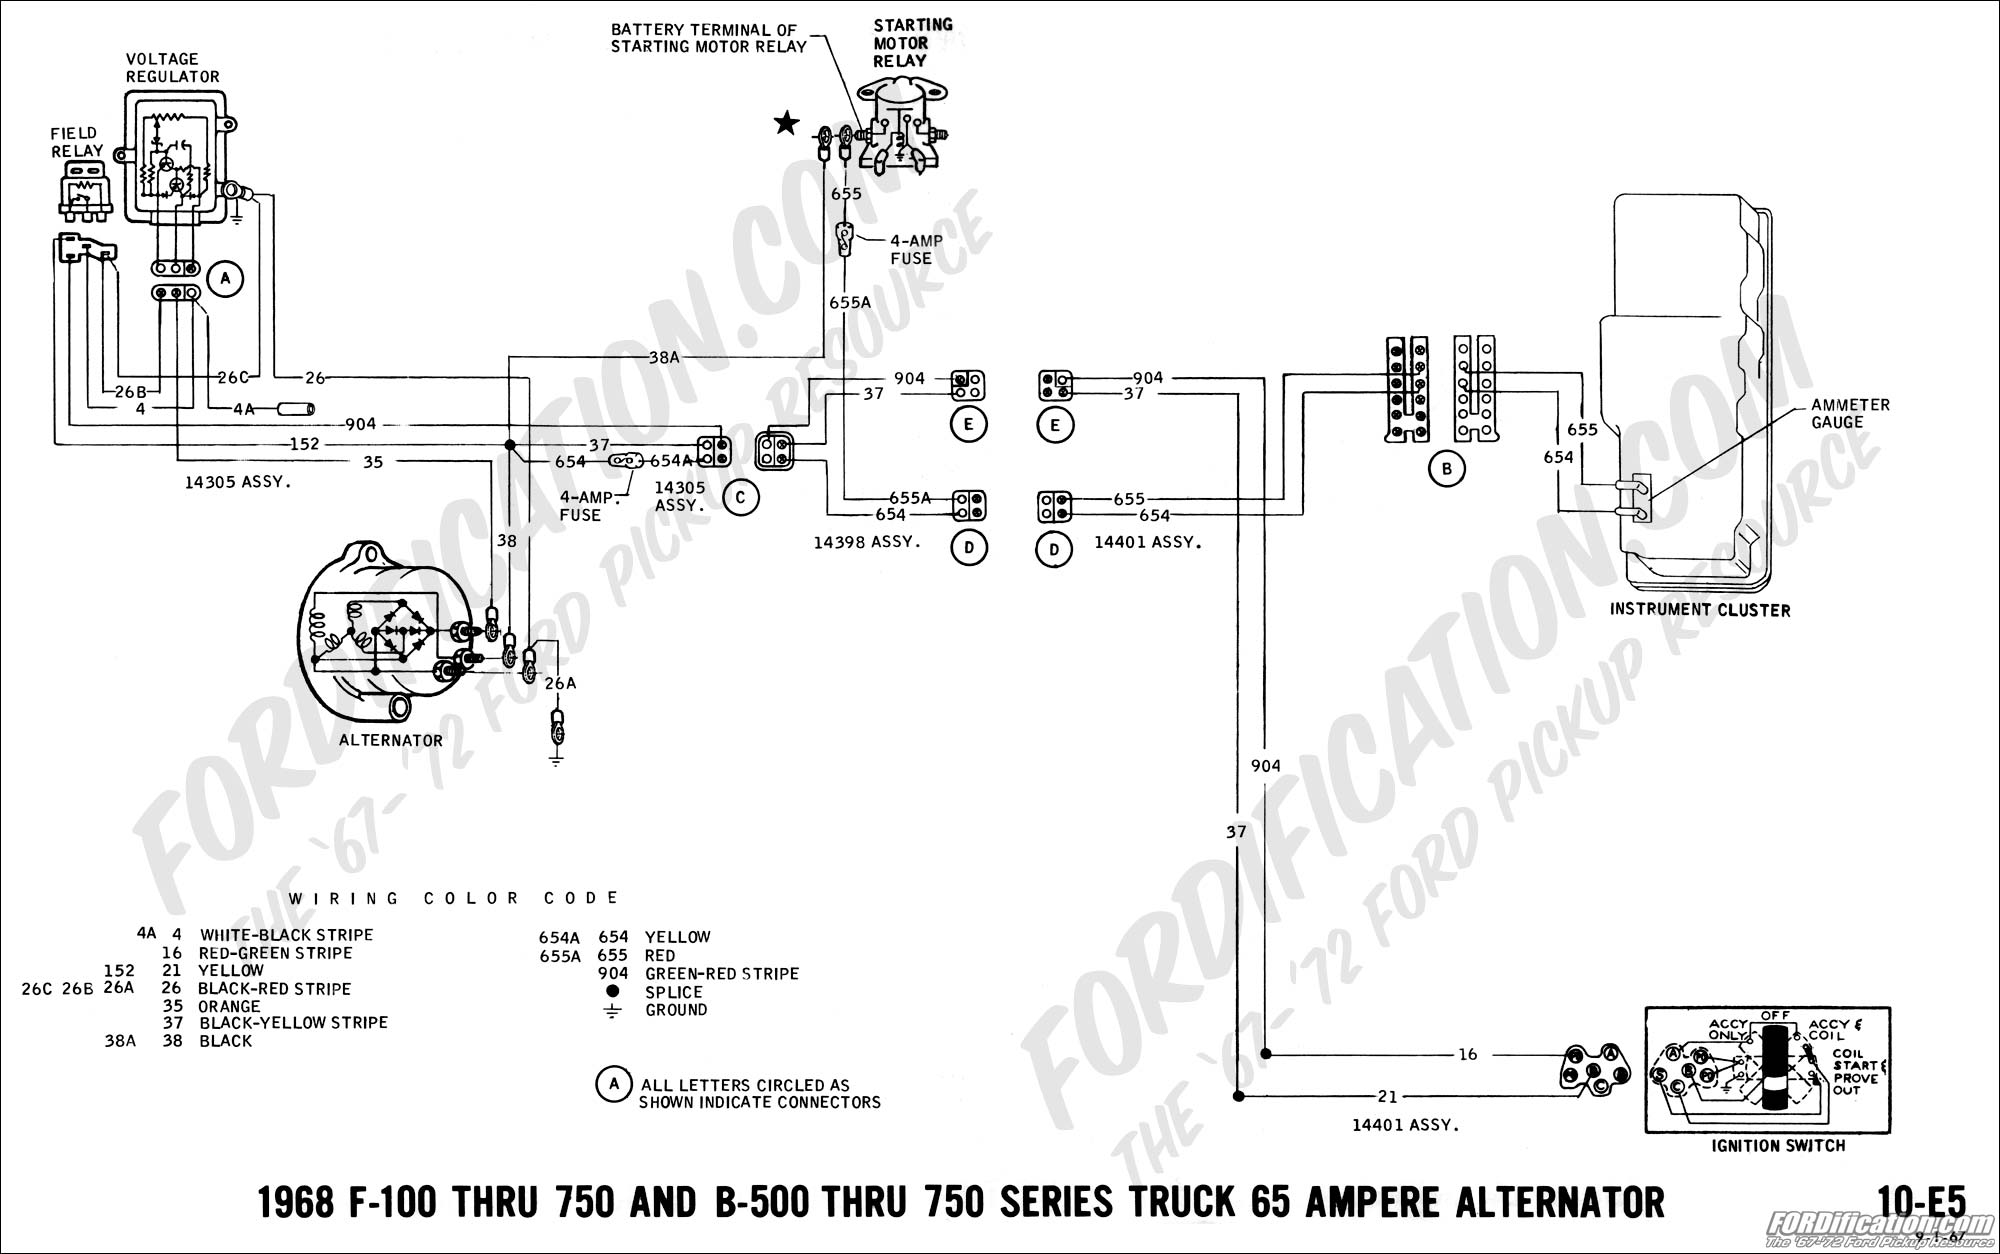 68 07 ford truck technical drawings and schematics section h wiring Diagram of a Car Console at gsmx.co